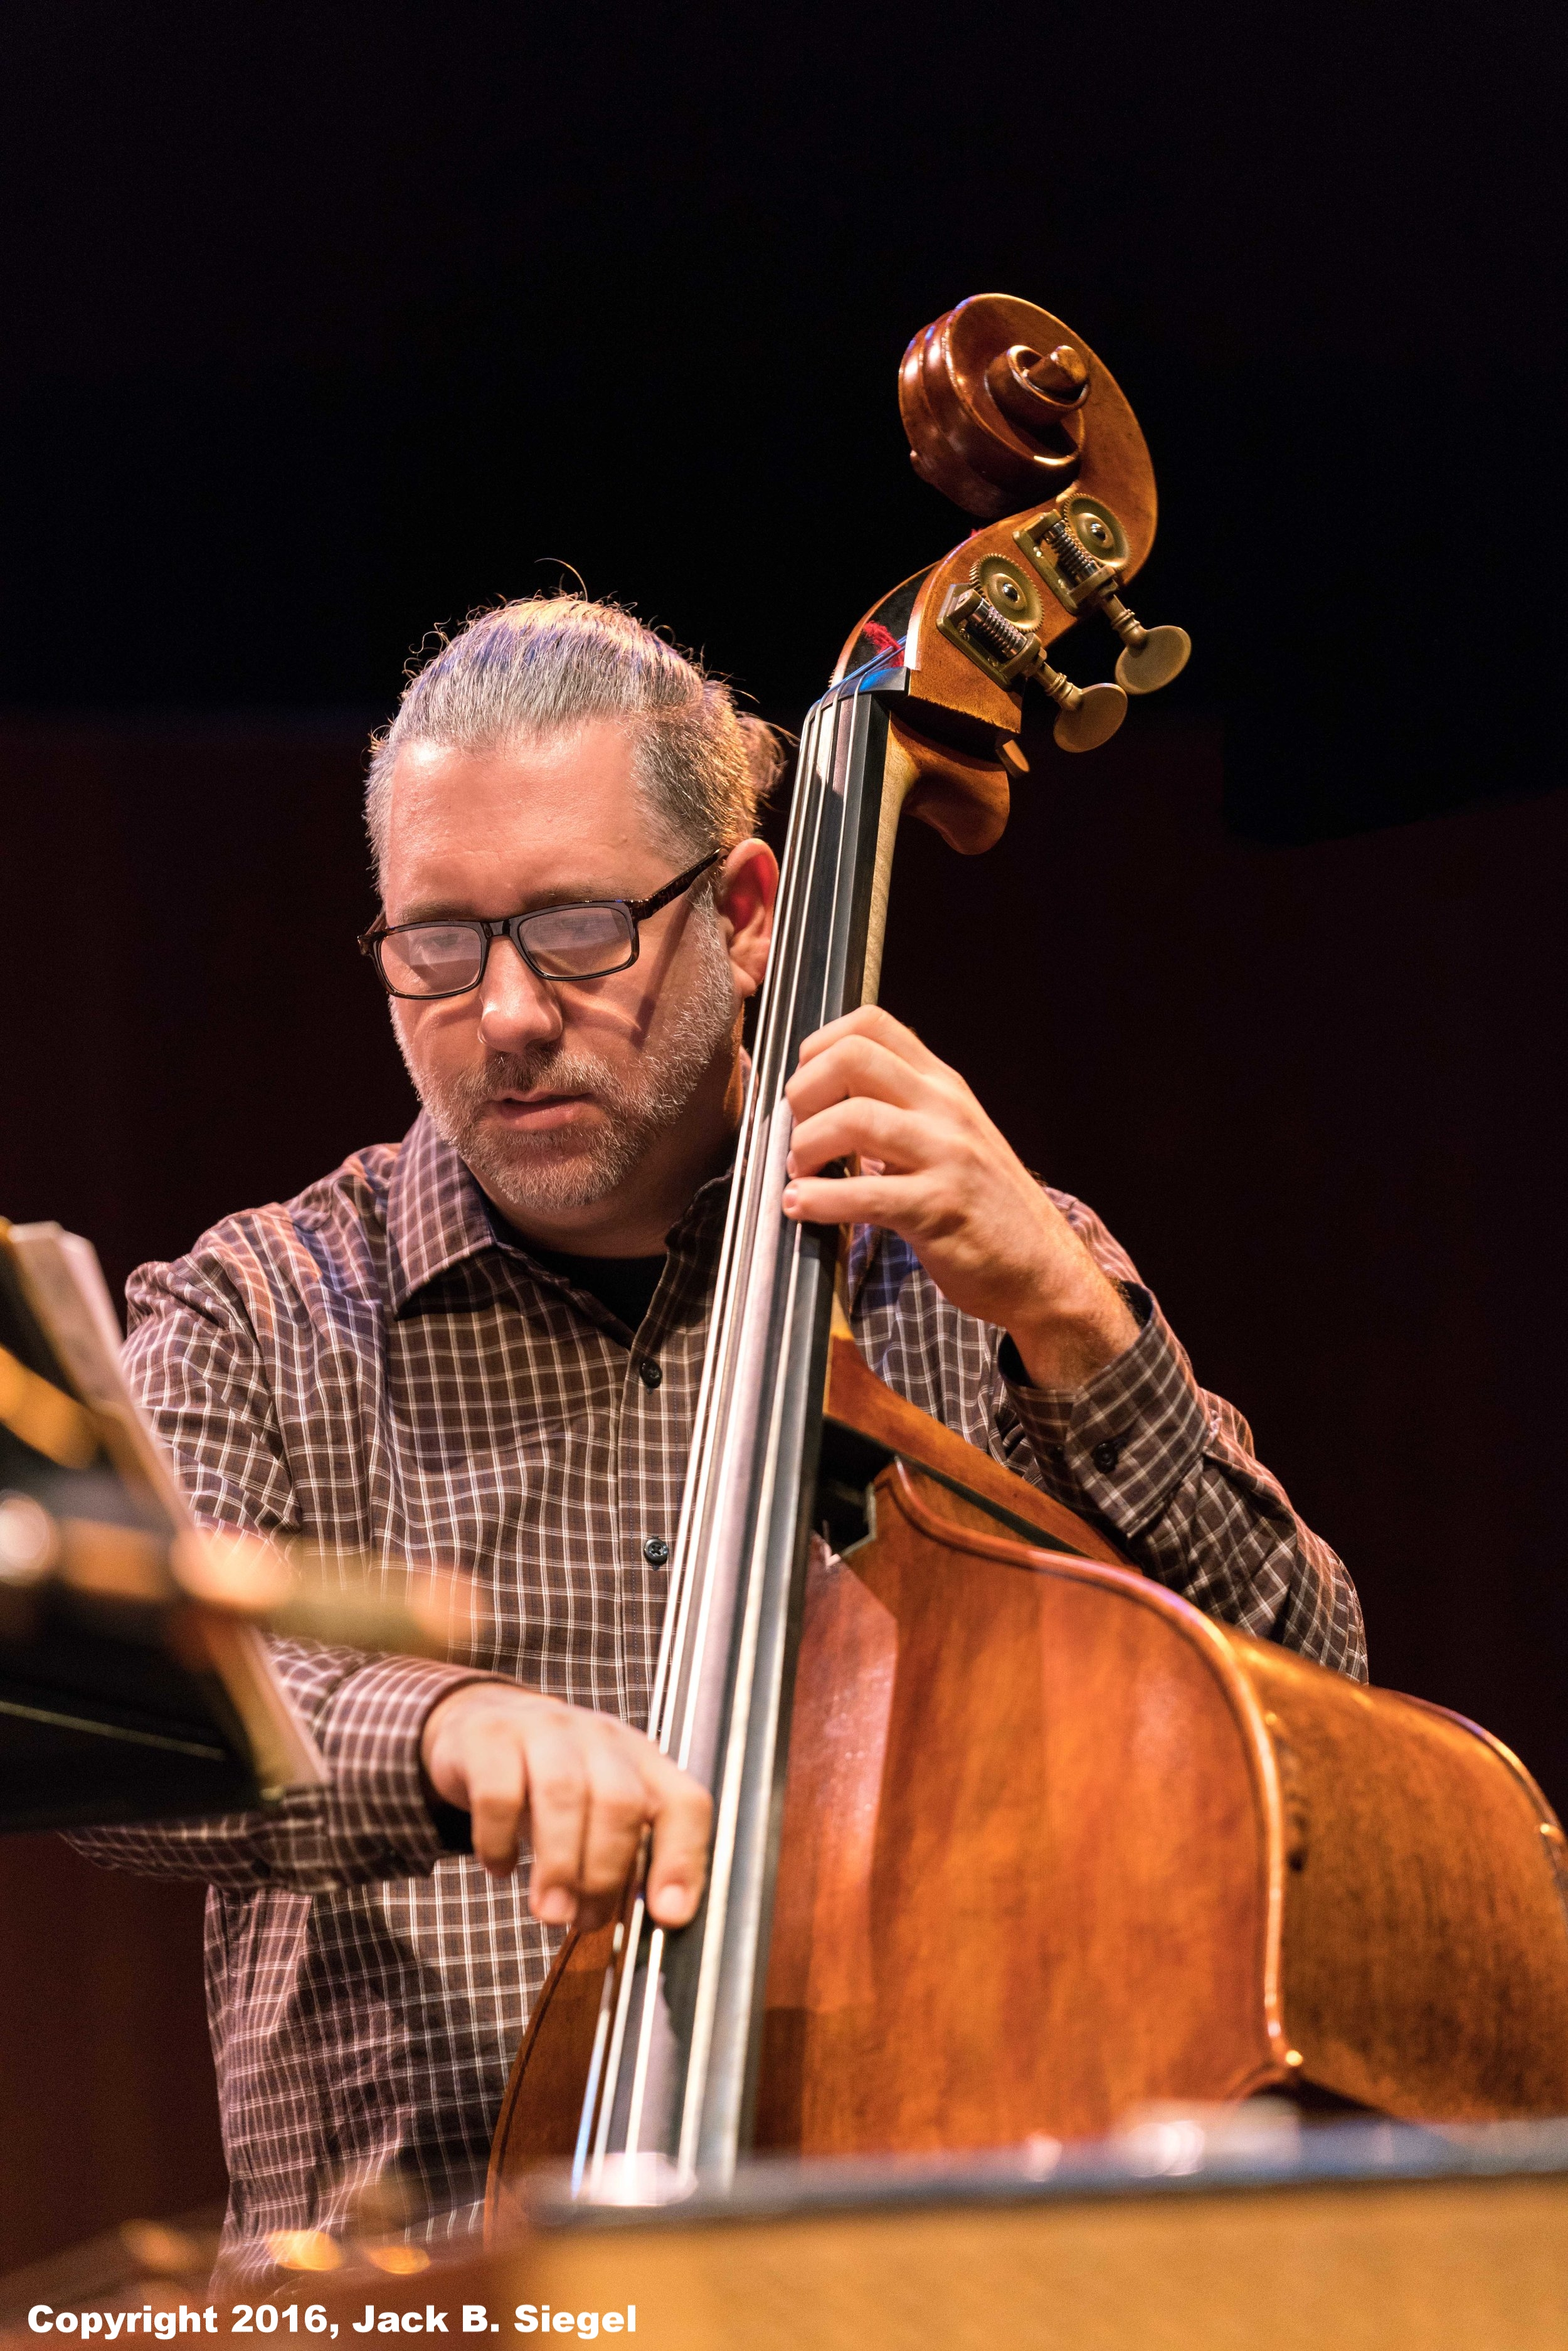 Carlos DeRosa on Bass with the Two Rivers Ensemble